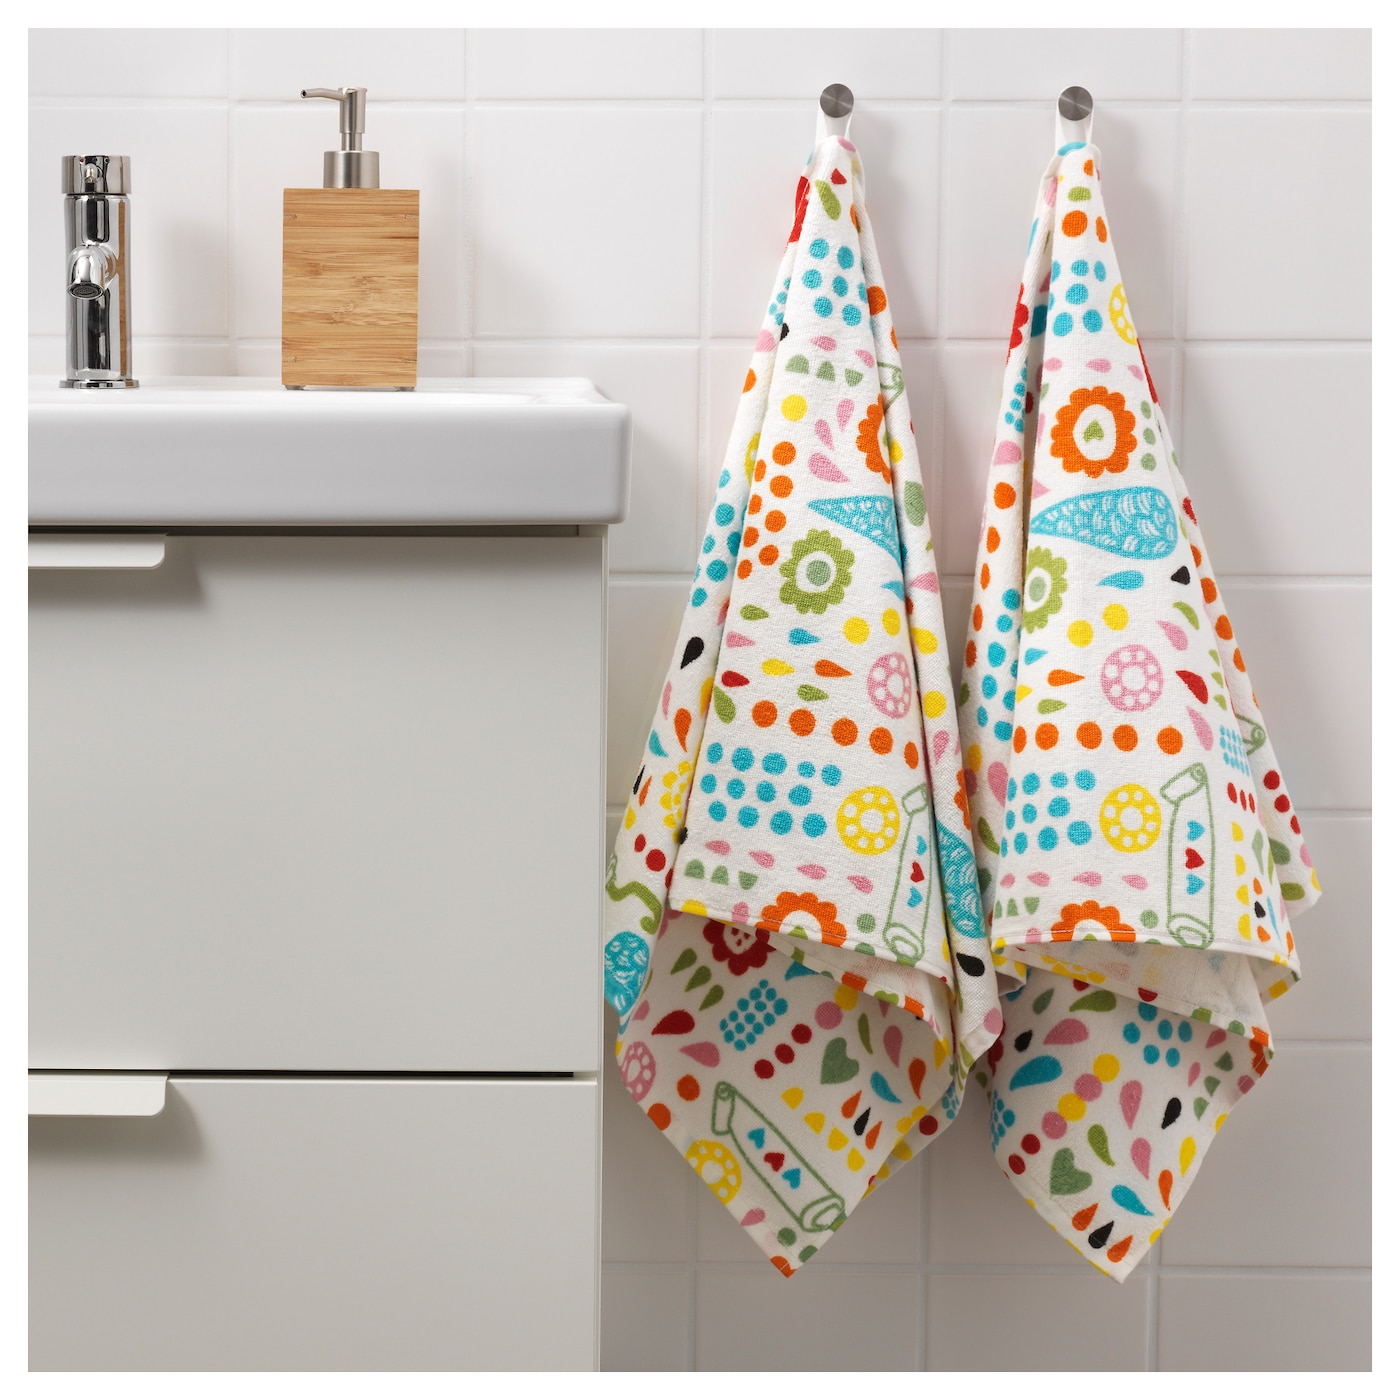 IKEA LÖNNERN hand towel A terry towel that is soft and absorbent (weight 390 g/m²).